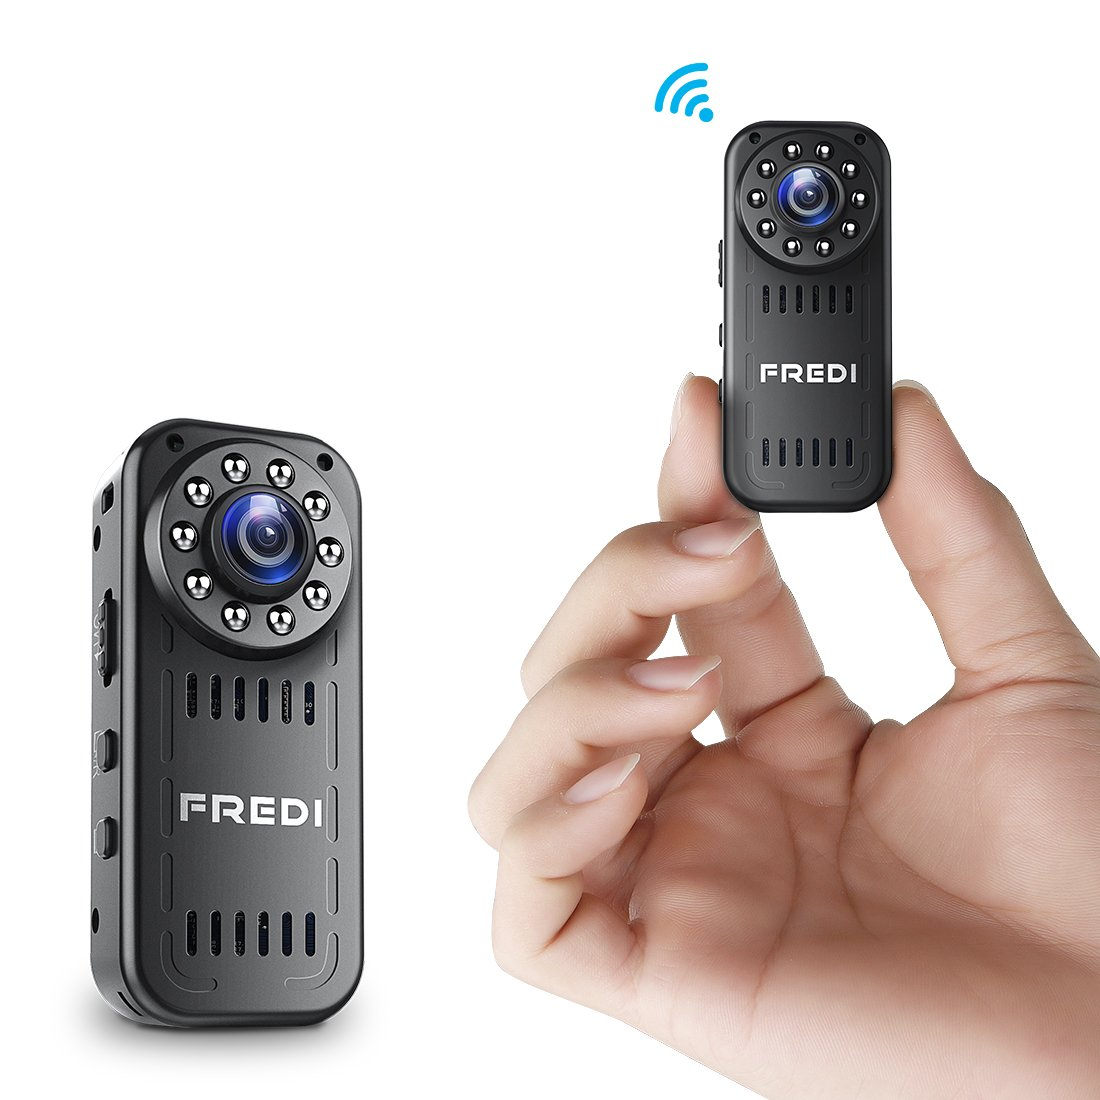 FREDI Hidden Camera 1080p HD Mini WiFi Camera spy Camera Wireless Camera for iPhone/Android Phone/iPad Remote View with Motion Detection(Update)